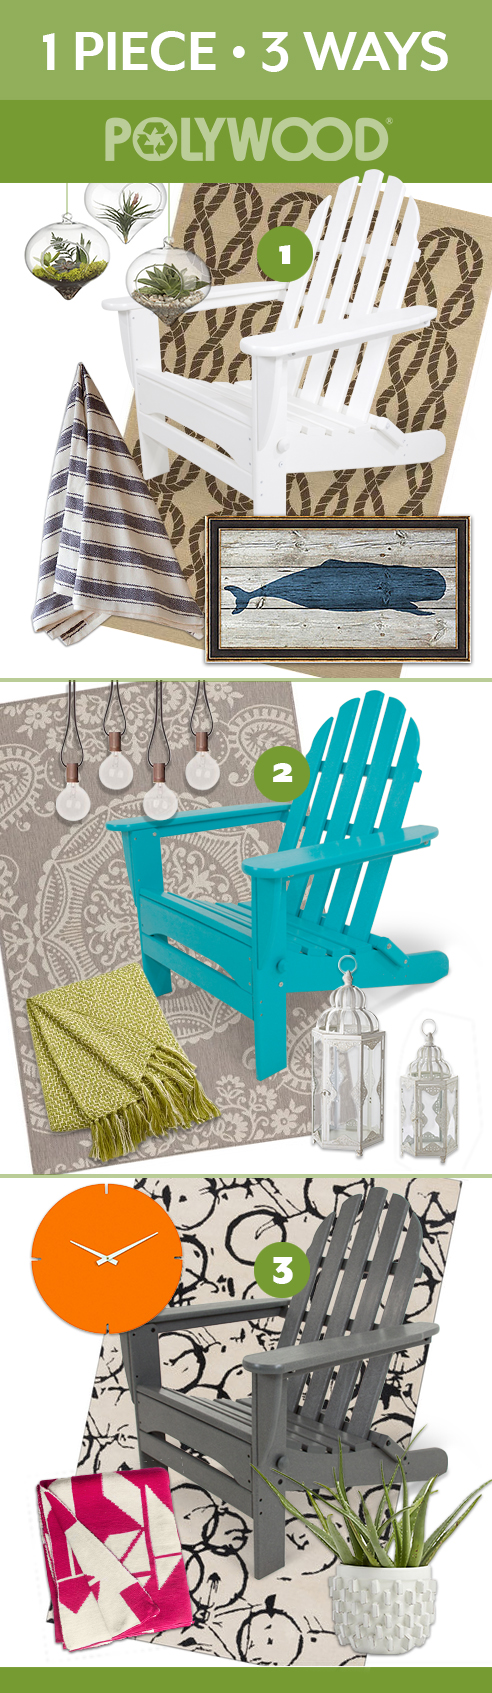 AD5030-POLYWOOD-Adirondack-Paired-With-Accessories